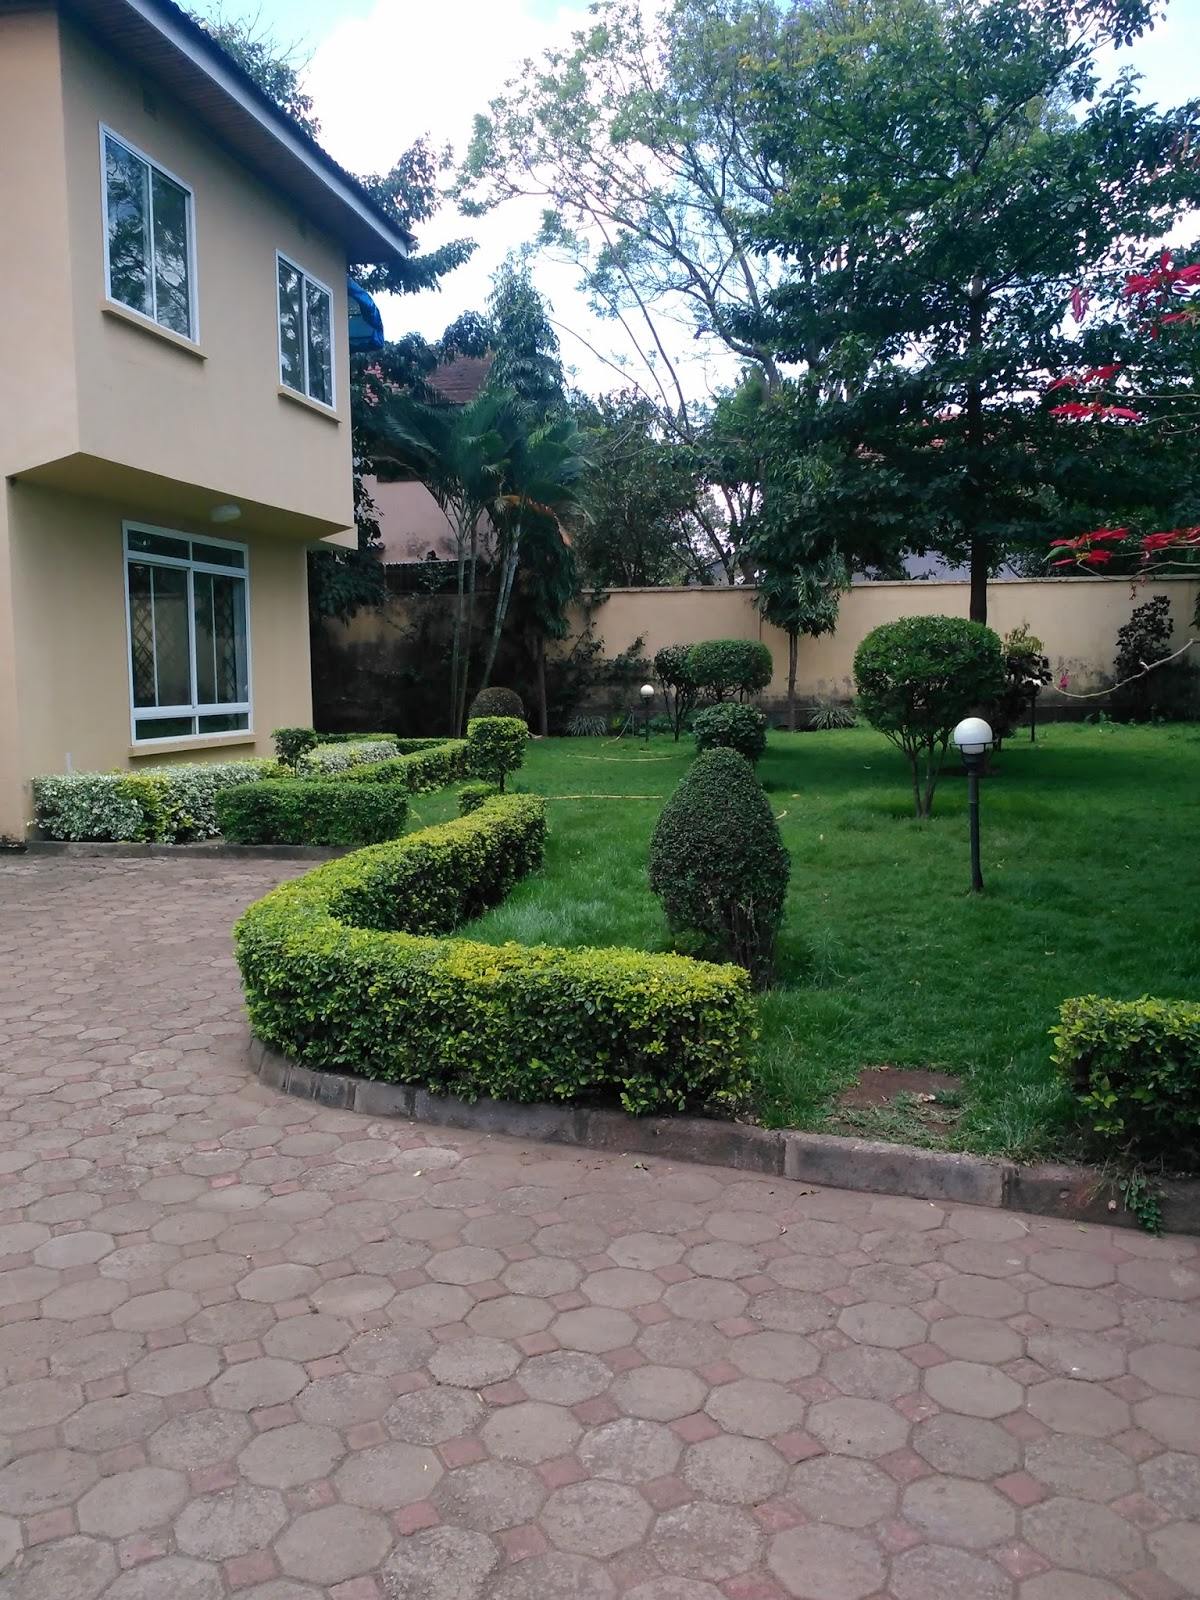 beautiful garden homes for rent.  This is 4 bedroom house large kitchen beautiful garden and rooms location prime at Njiro AGM Rent in Tanzania Arusha rent houses Houses for sale